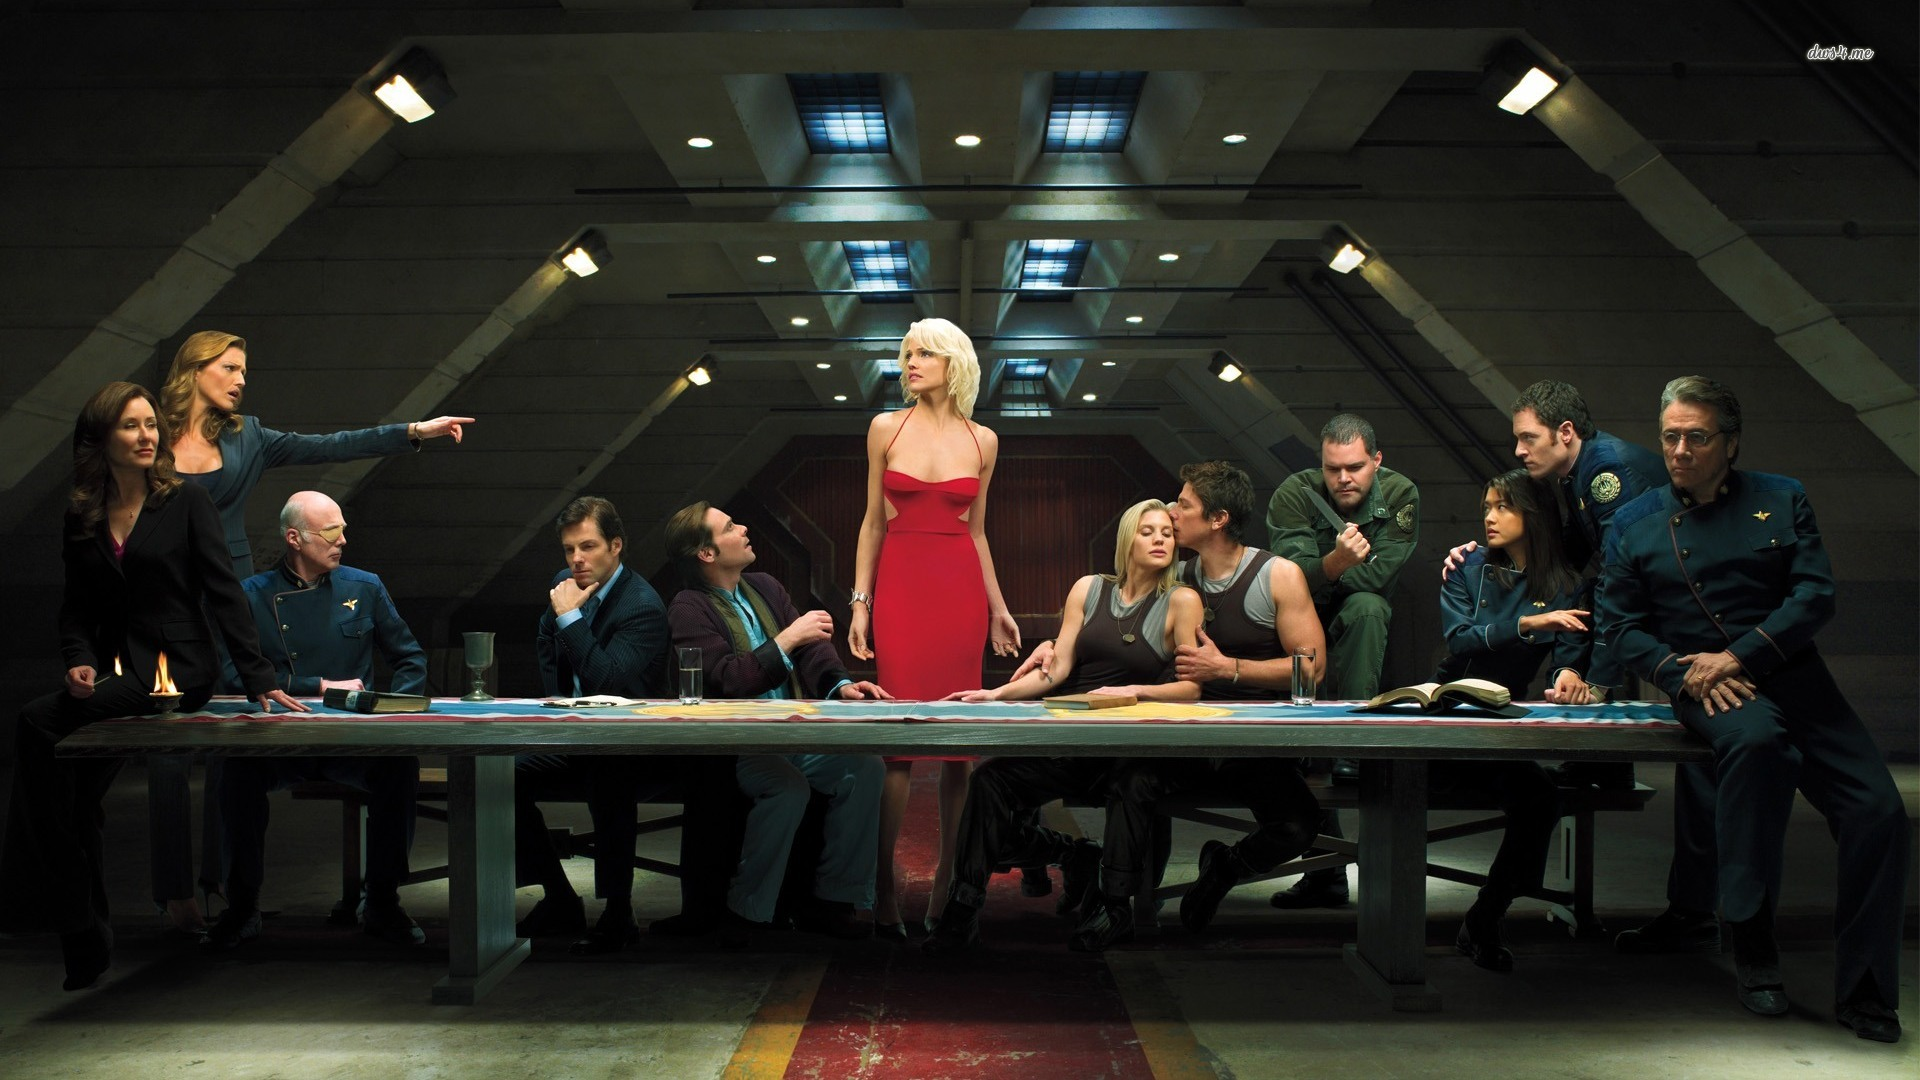 Battlestar-Galactica-Final-Dinner-wallpaper-wpc5802561